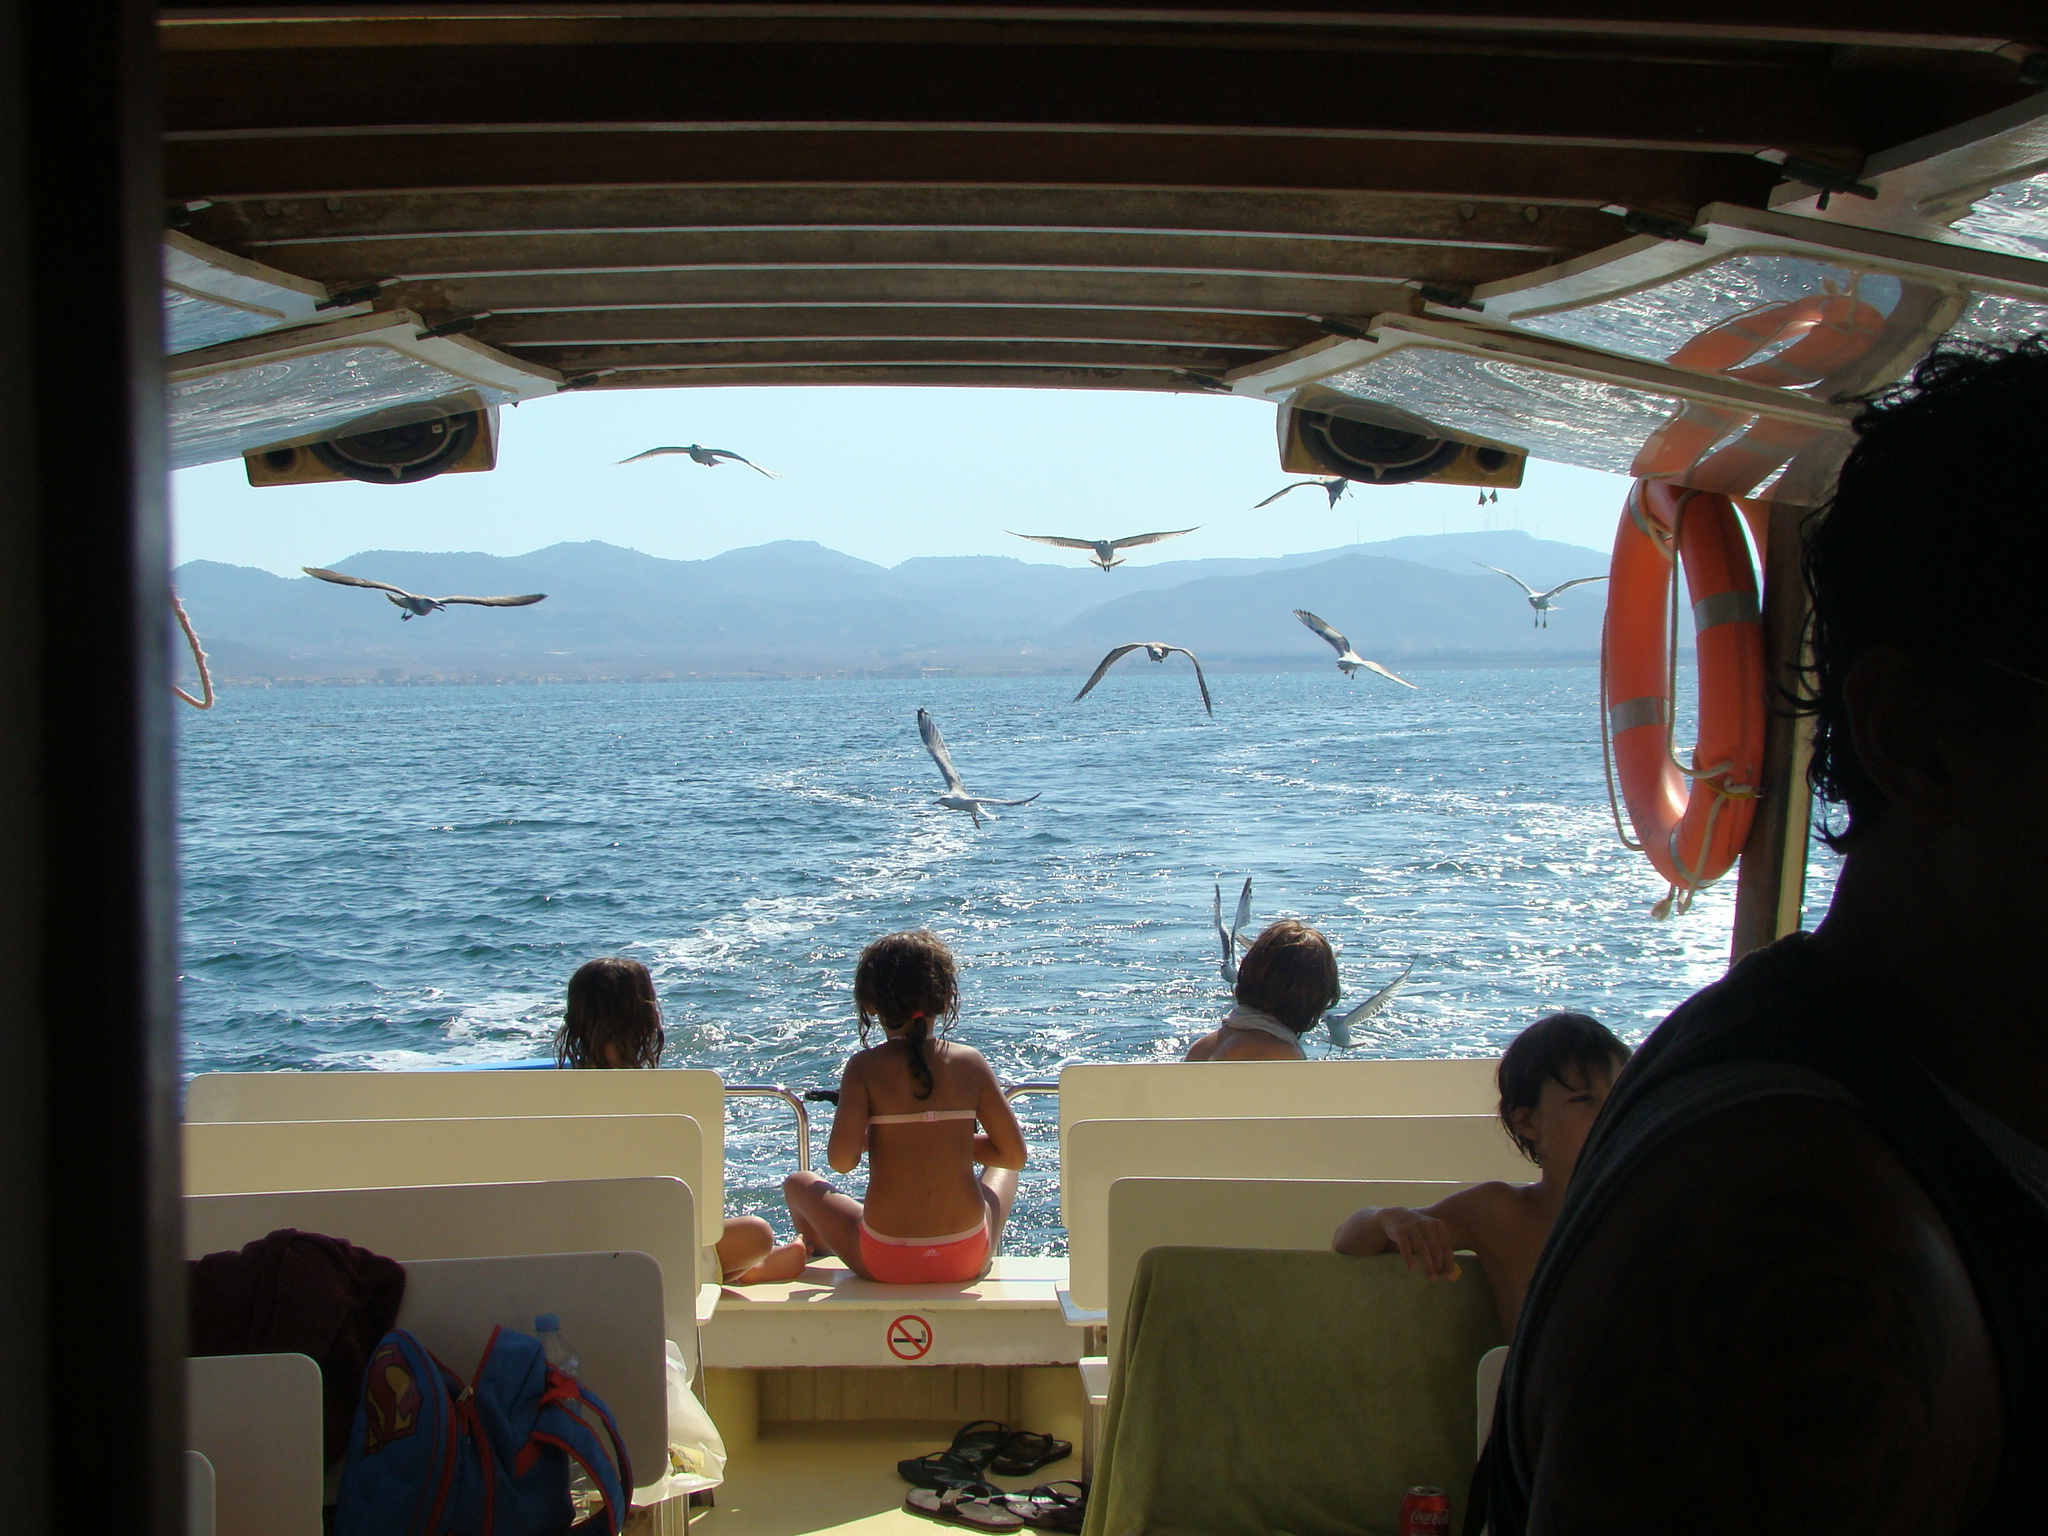 Swim chill out tour solaz lines excursiones mar timas for Patakha bano food mat